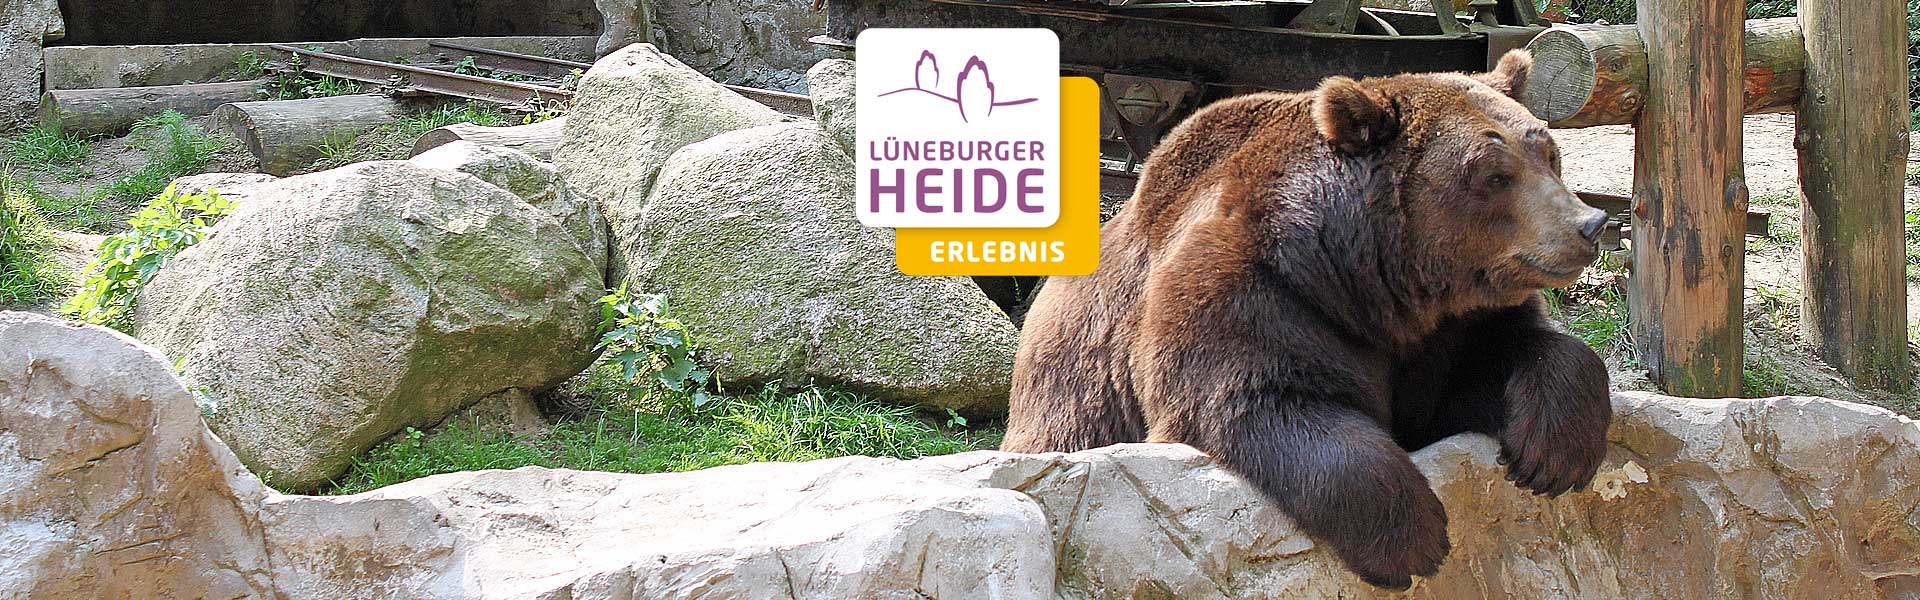 Wildpark Lüneburger Heide in Hanstedt Nindorf an der A7